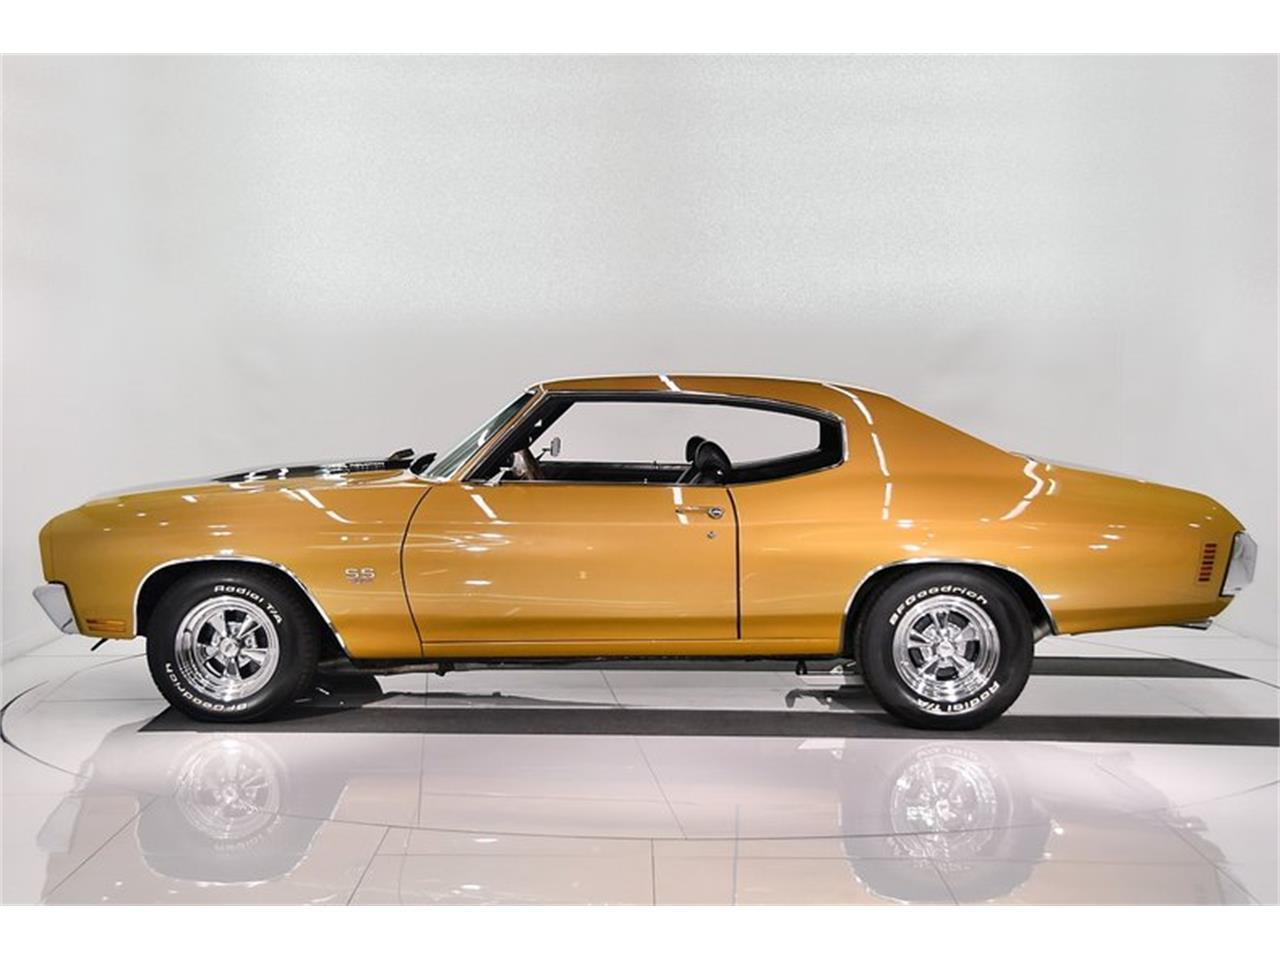 Large Picture of Classic 1970 Chevrolet Chevelle located in Volo Illinois - $49,998.00 - QKLO